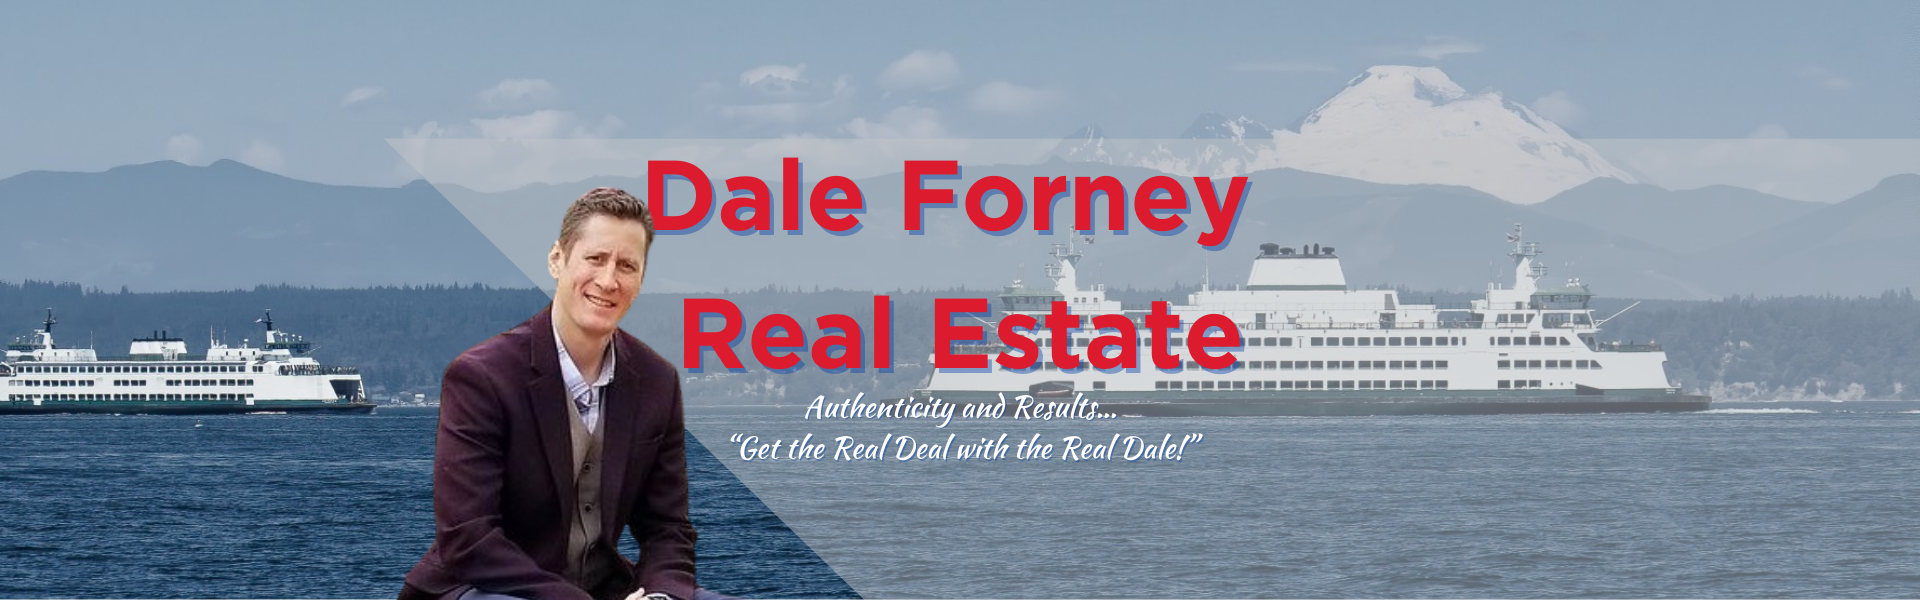 Dale Forney Real Estate